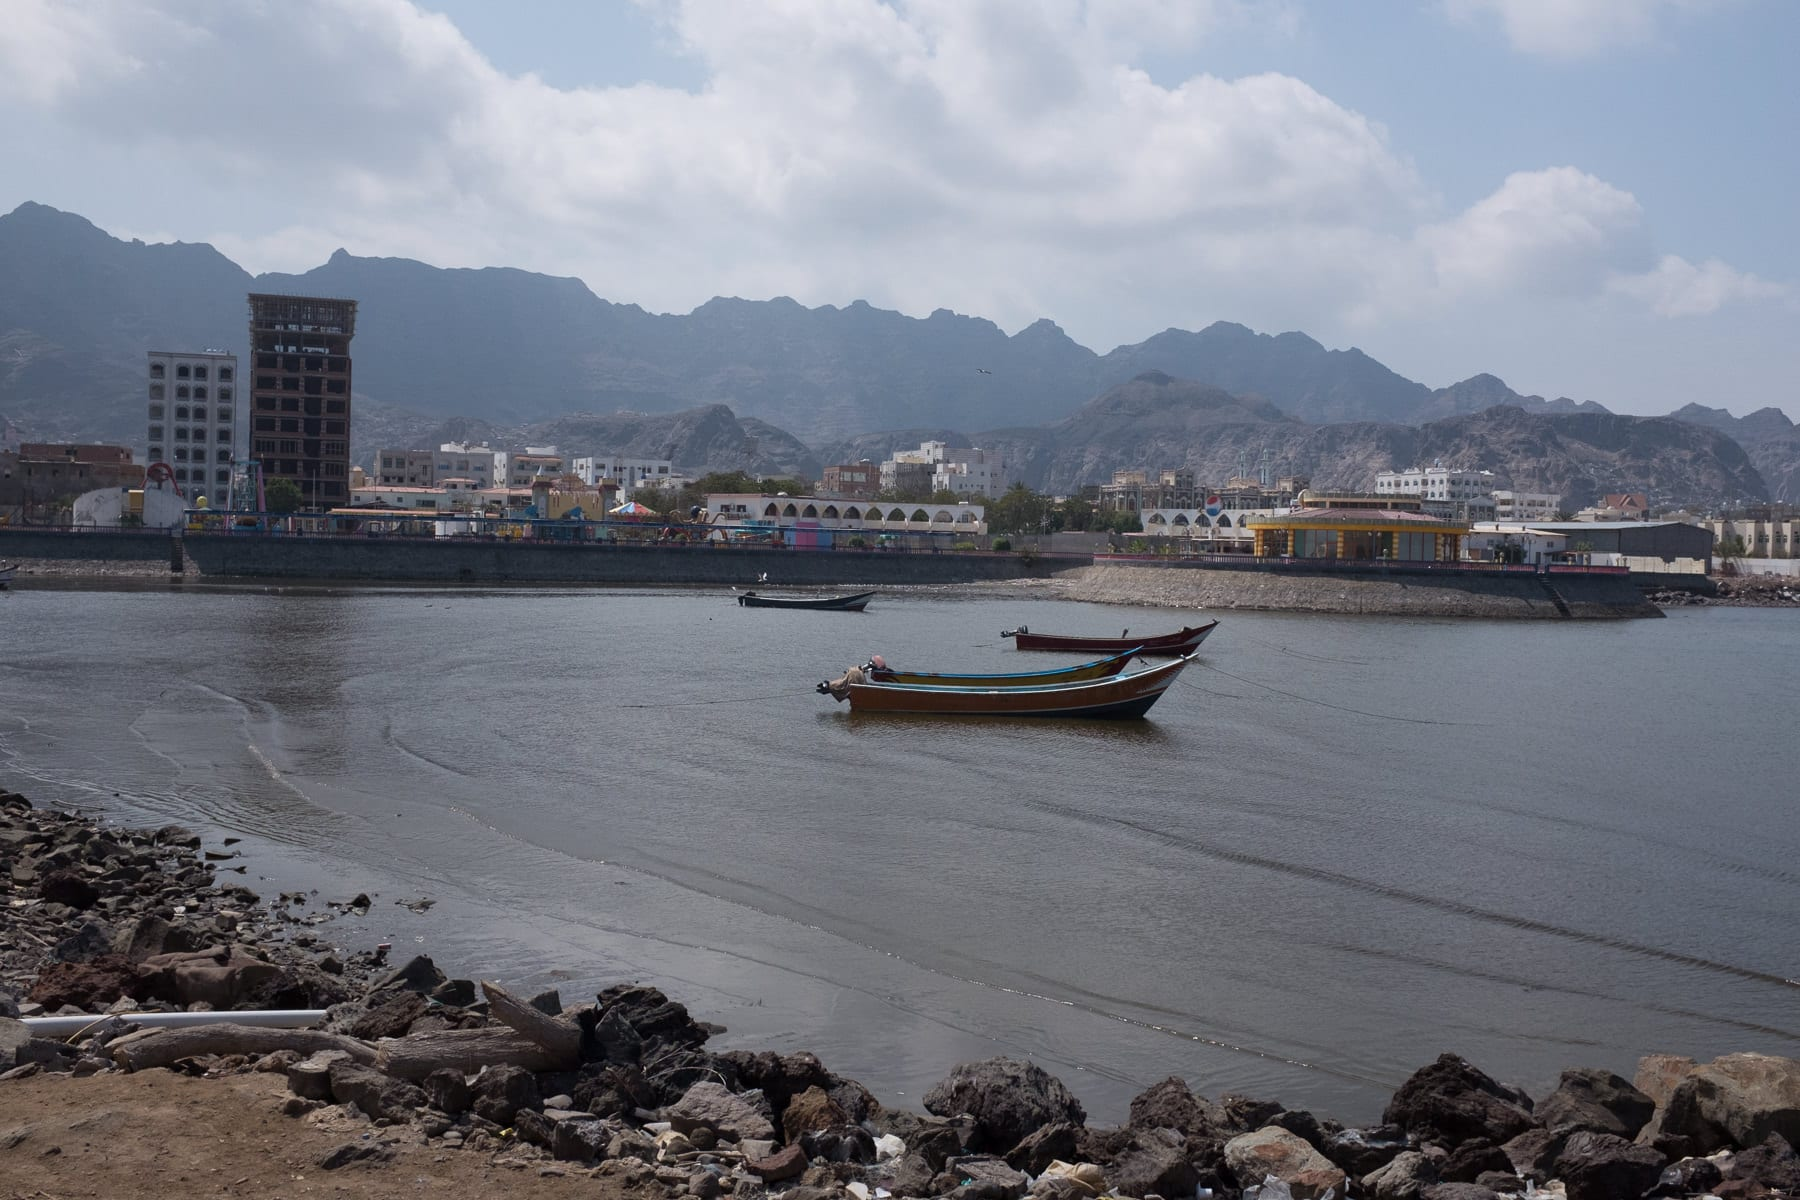 aden-yemen-travels-s2-images-001-2